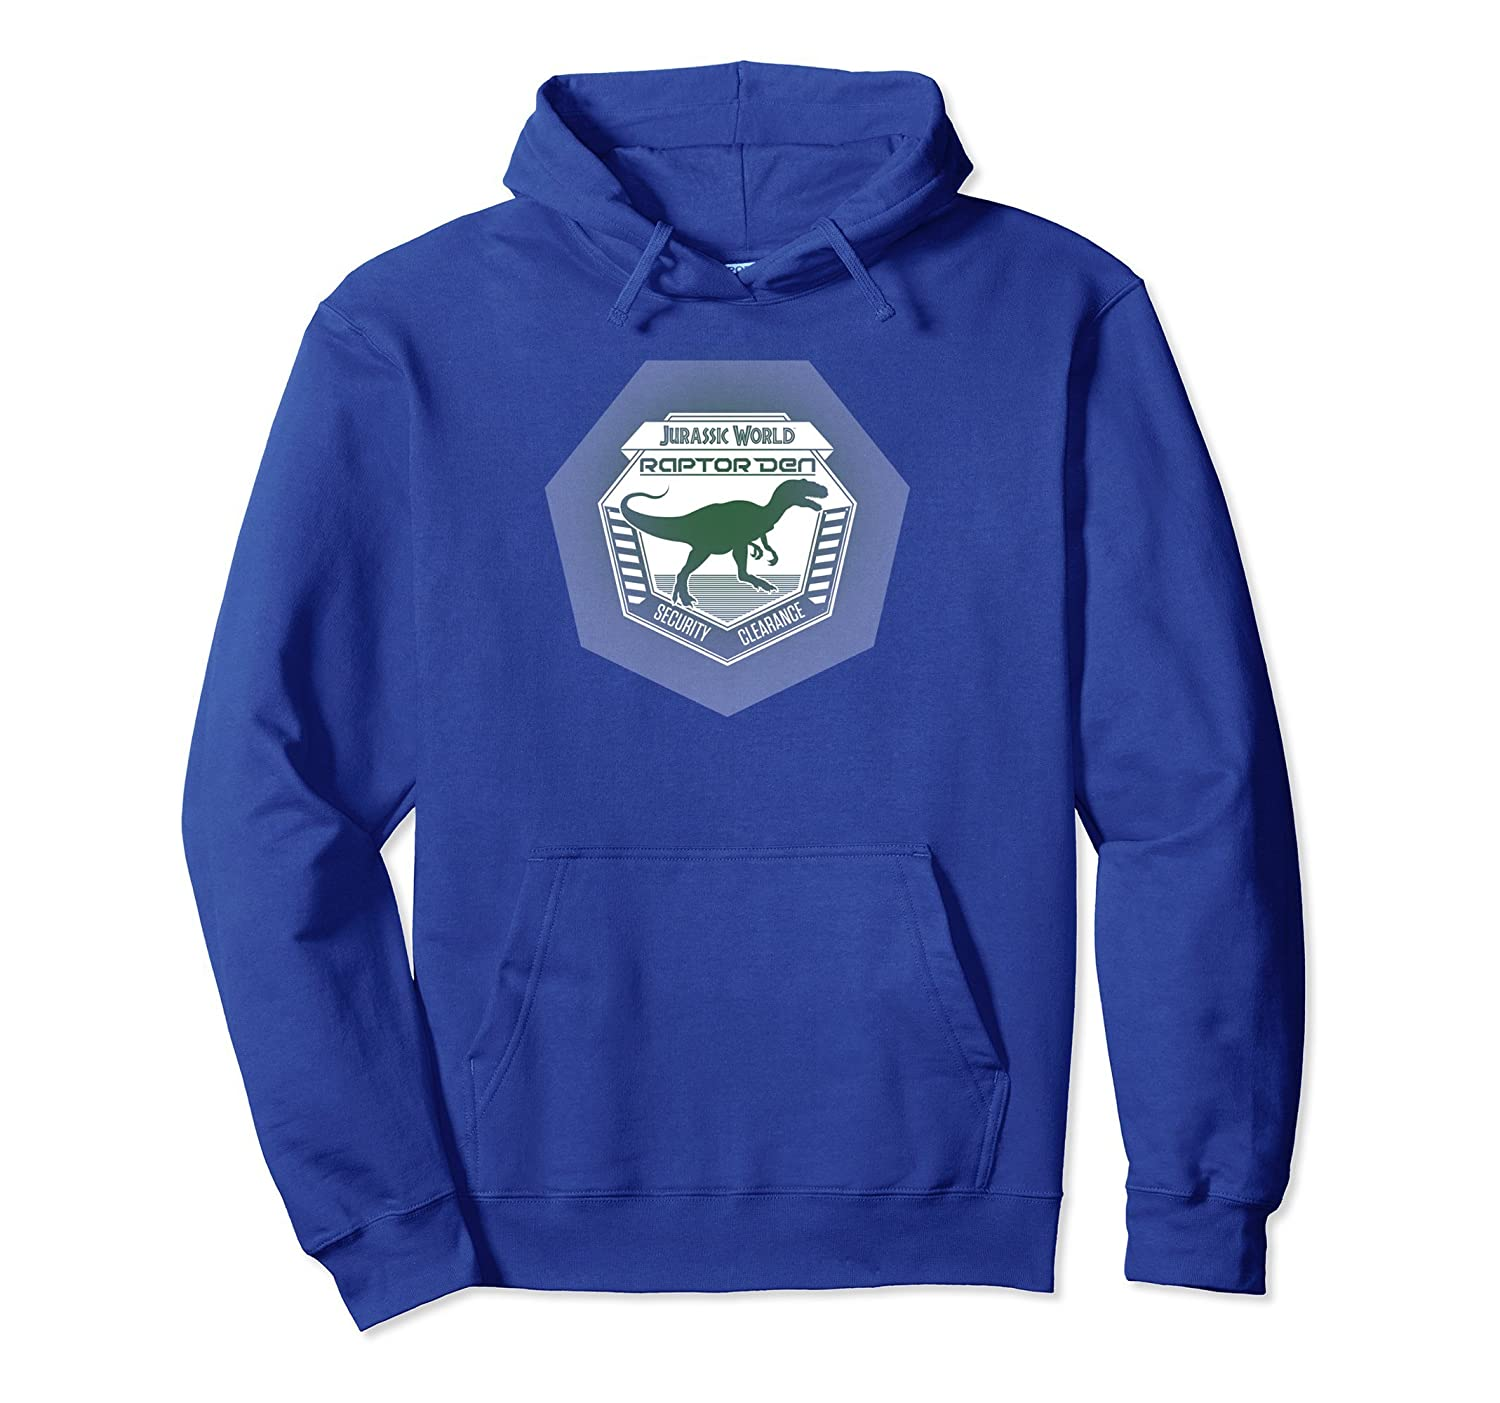 Jurassic World Raptor Den Security Clearance Hoodie-AZP